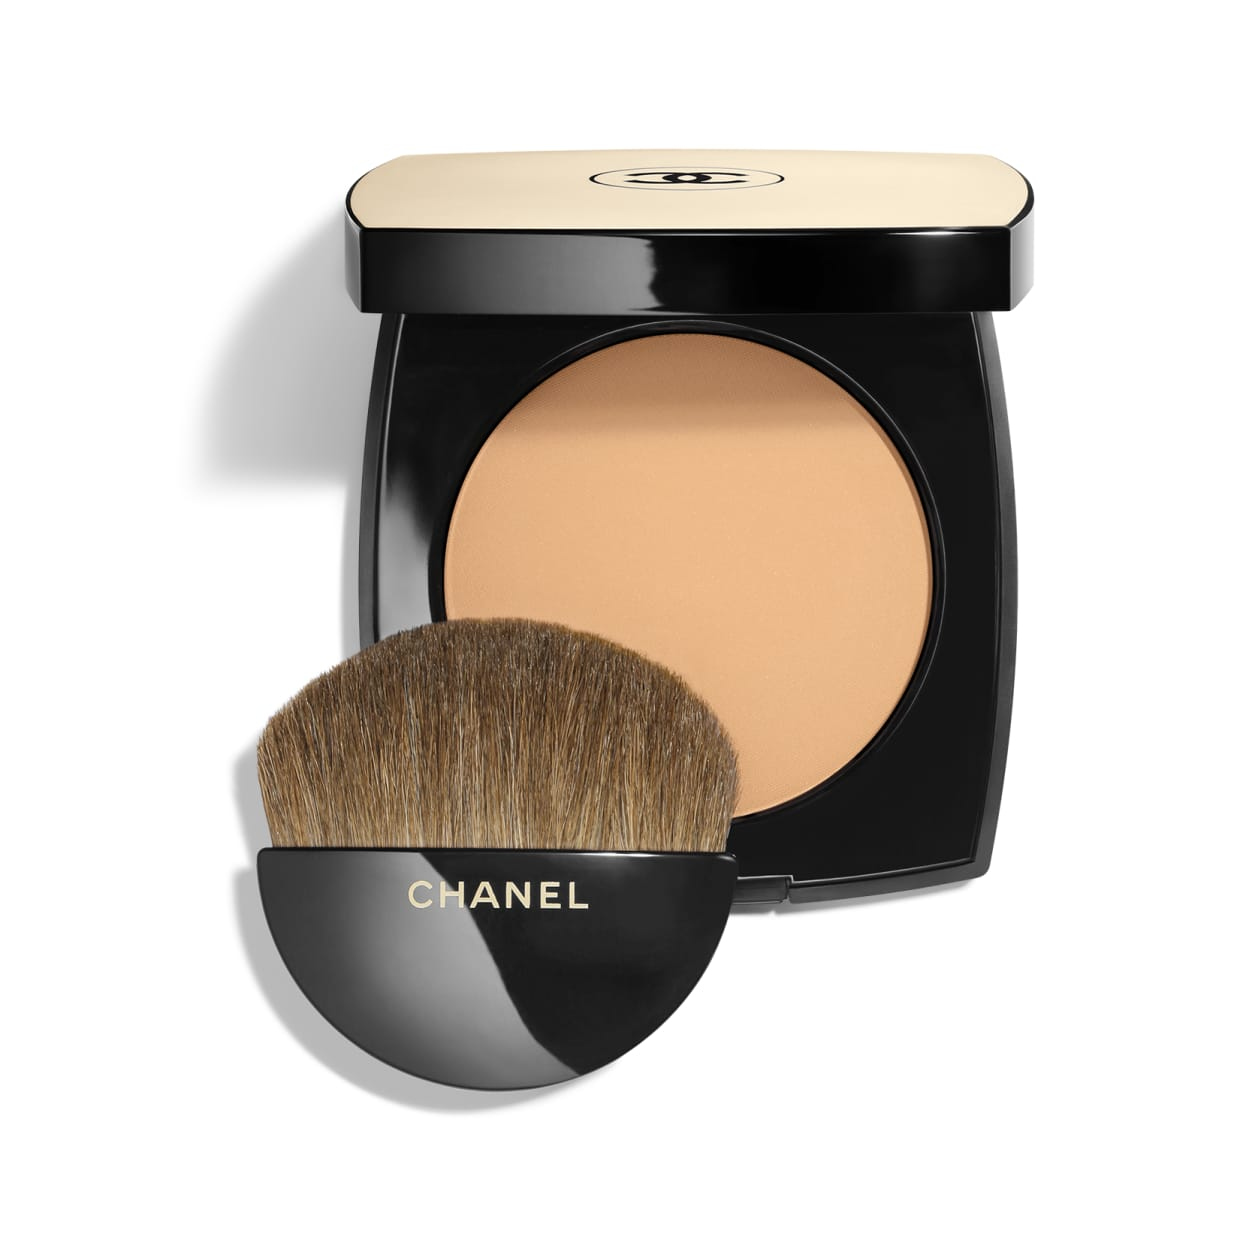 Chanel Les Beiges Healthy Glow Sheer Powder cho da dầu